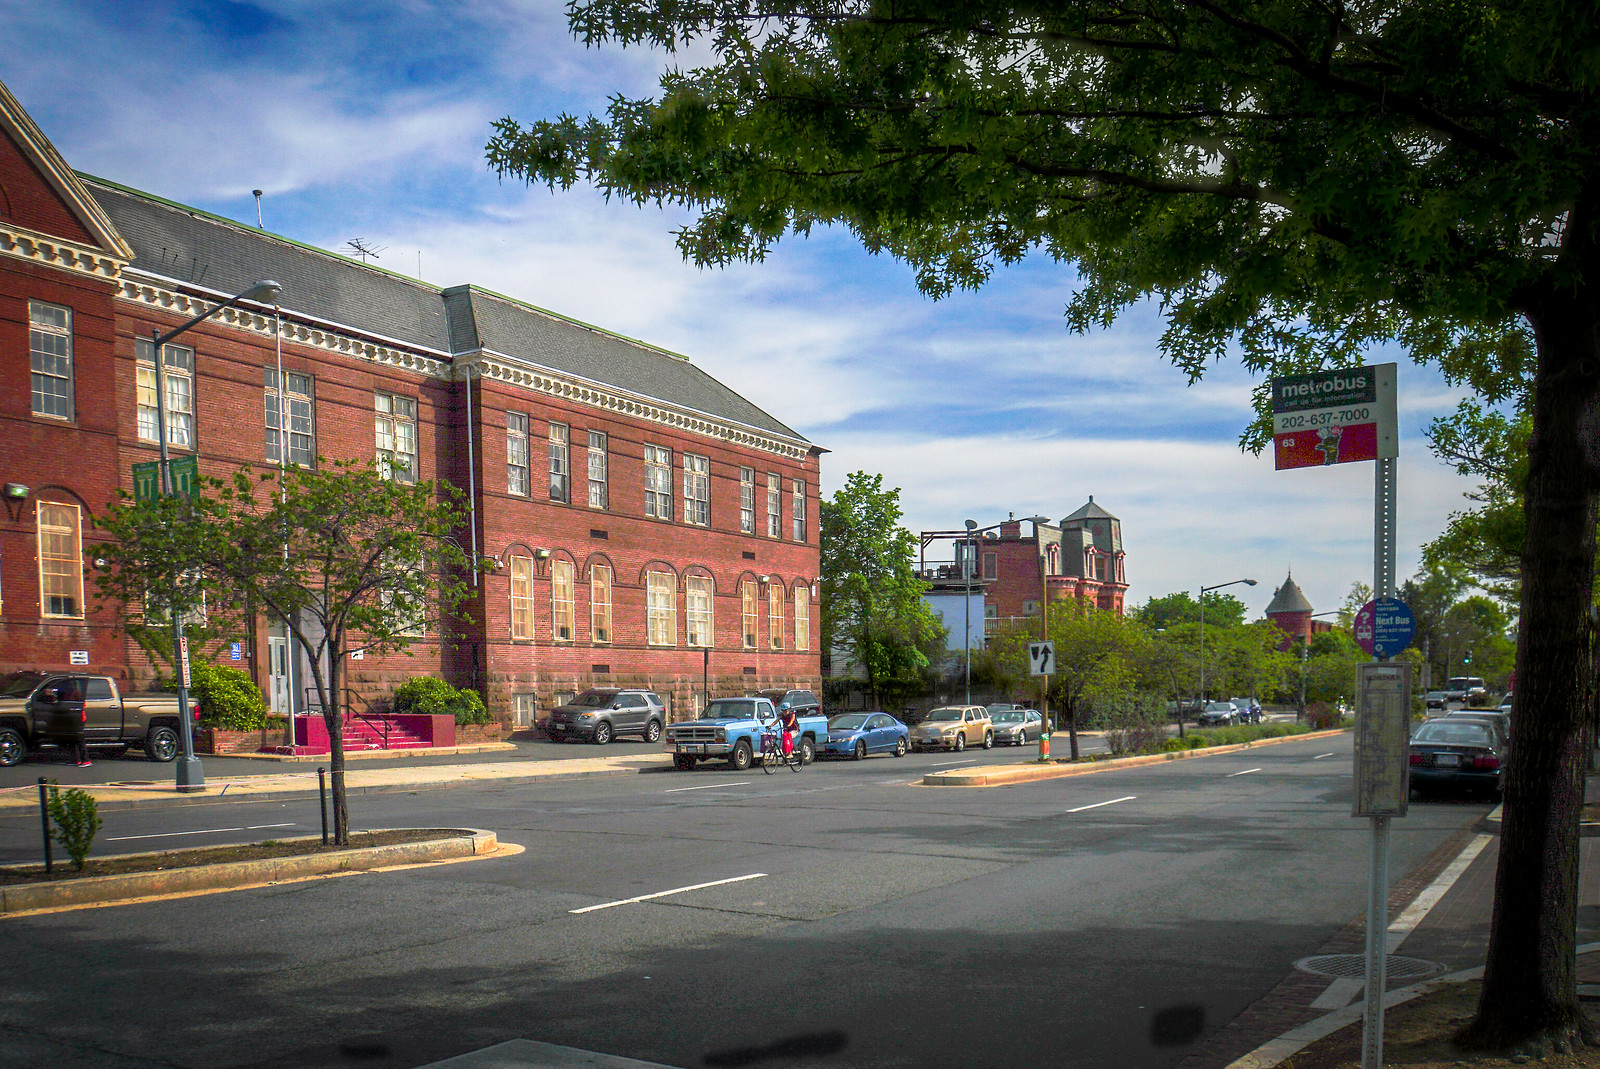 2016.04.25 Vermont Avenue, Washington, DC USA 04438-HDR